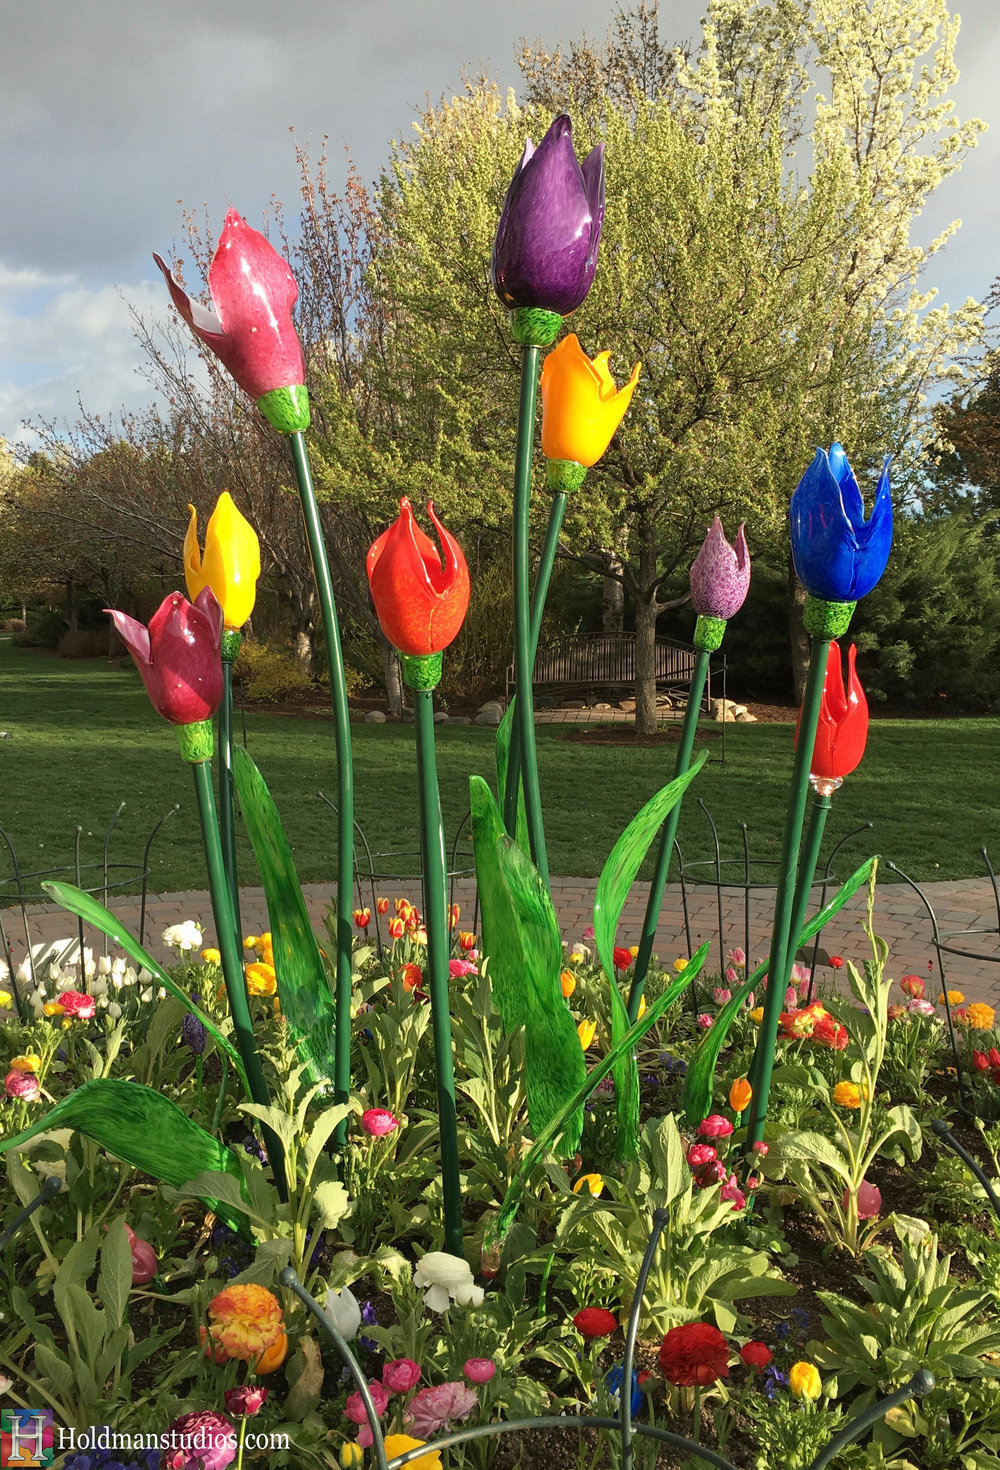 Blown Glass_Ashton Garden Tulips 2.jpg